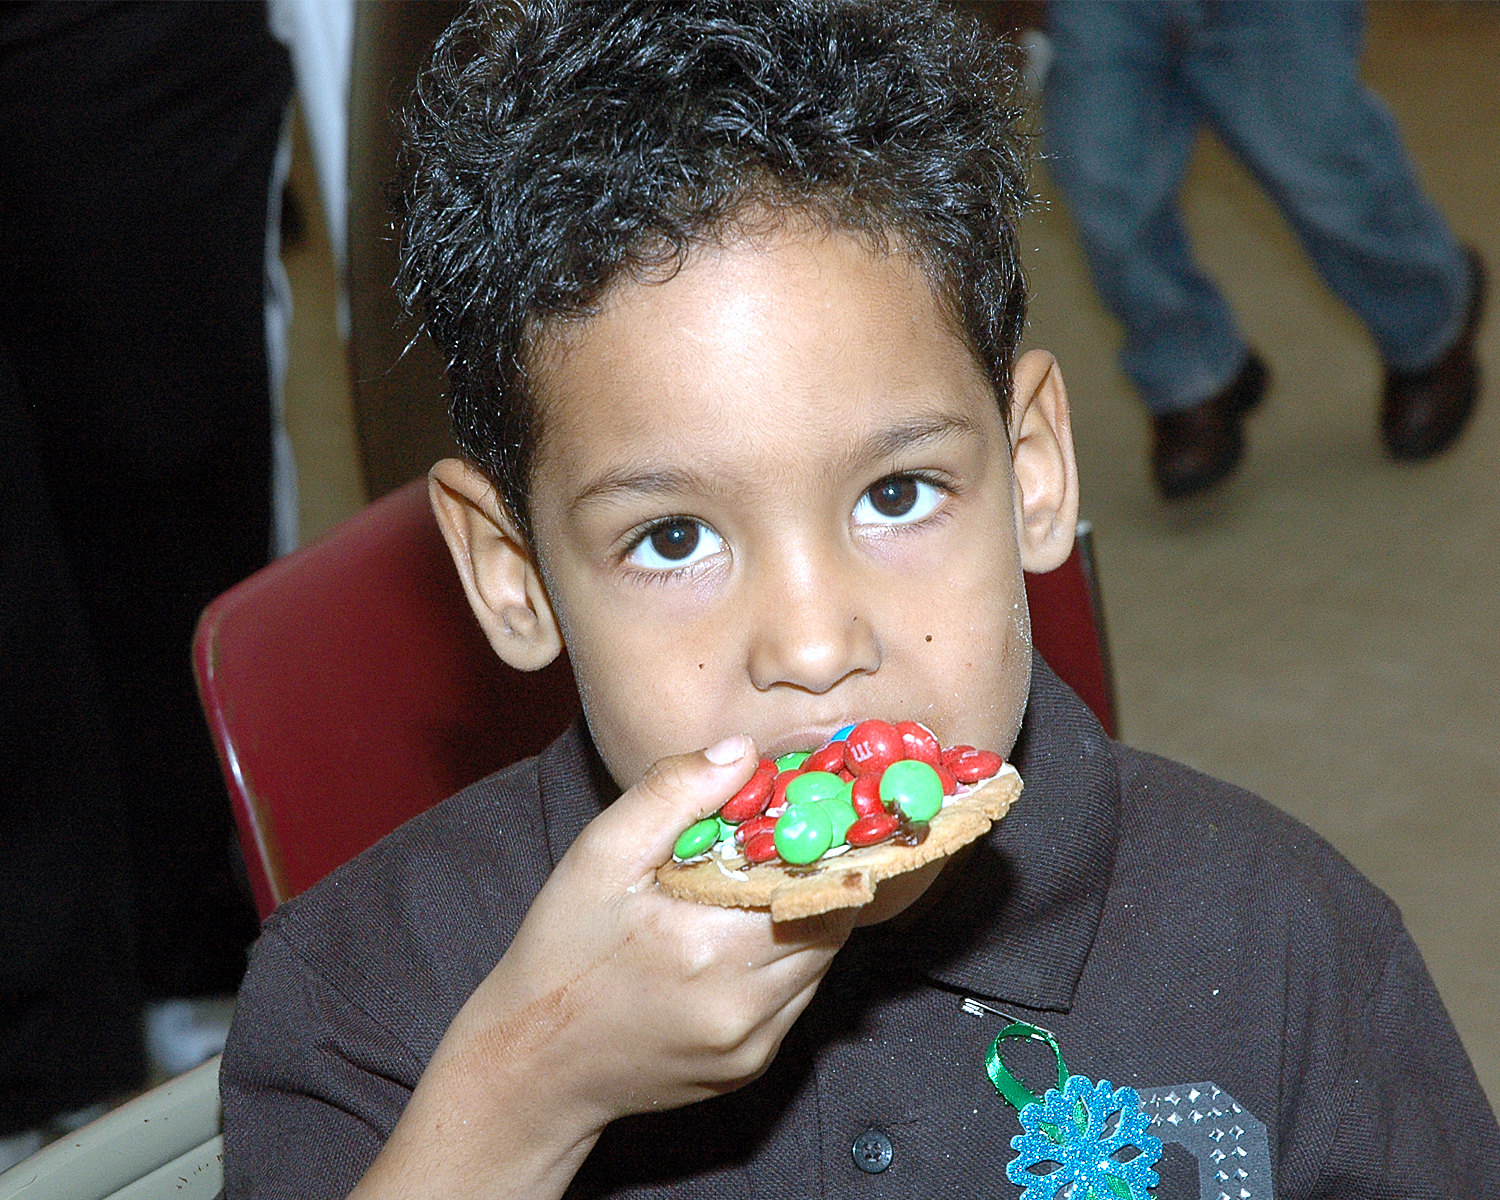 An attendee enjoying a cookie that he decorated